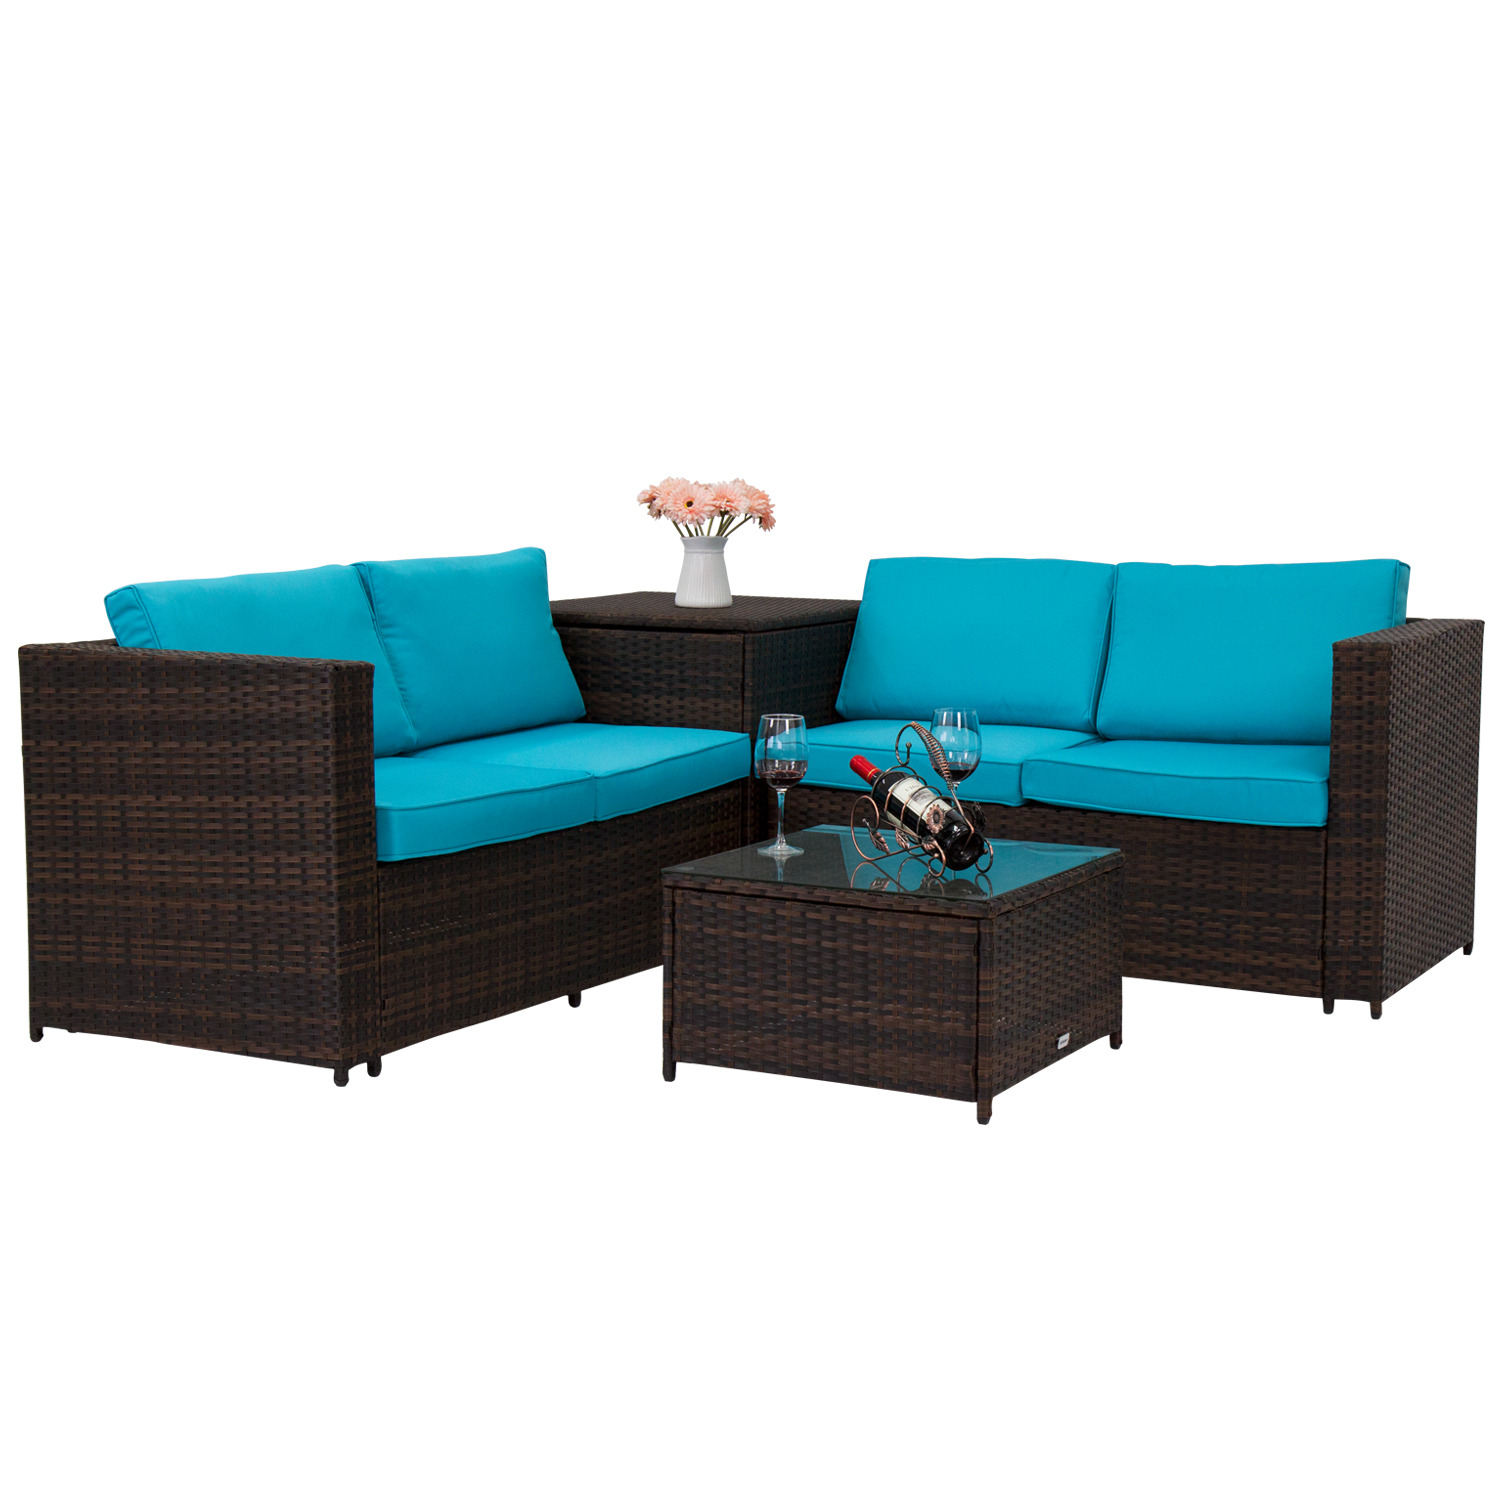 Details about 4PC All-Weather Rattan Patio Sofa Furniture Set Storage Table  Outdoor Lawn Deck